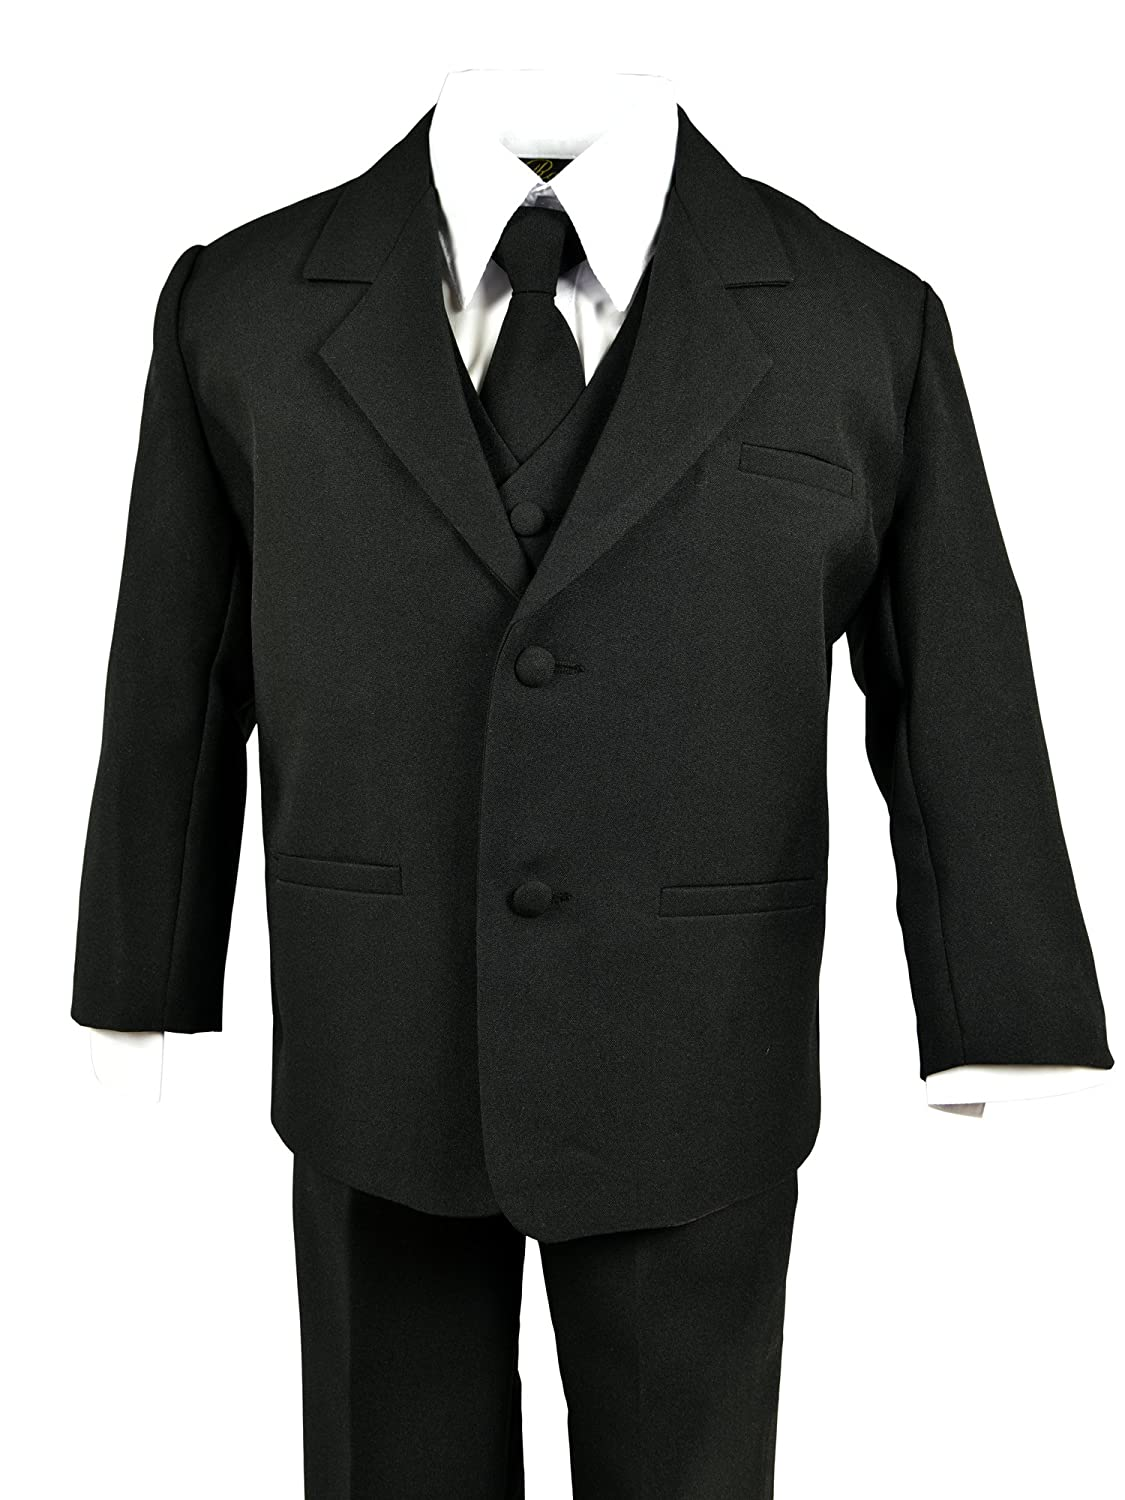 cce9278aa Amazon.com  Spring Notion Baby Boys  Formal Black Dress Suit Set  Clothing